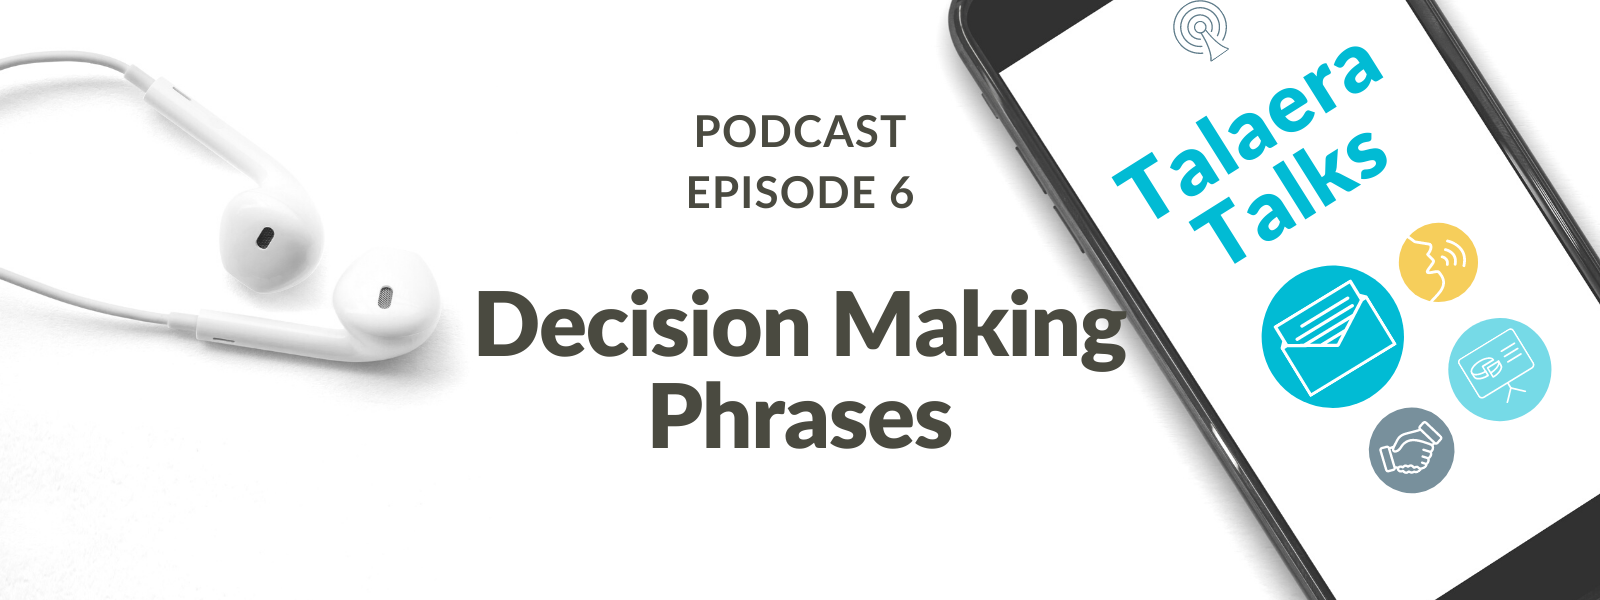 10 Helpful Decision Making Phrases [Podcast]